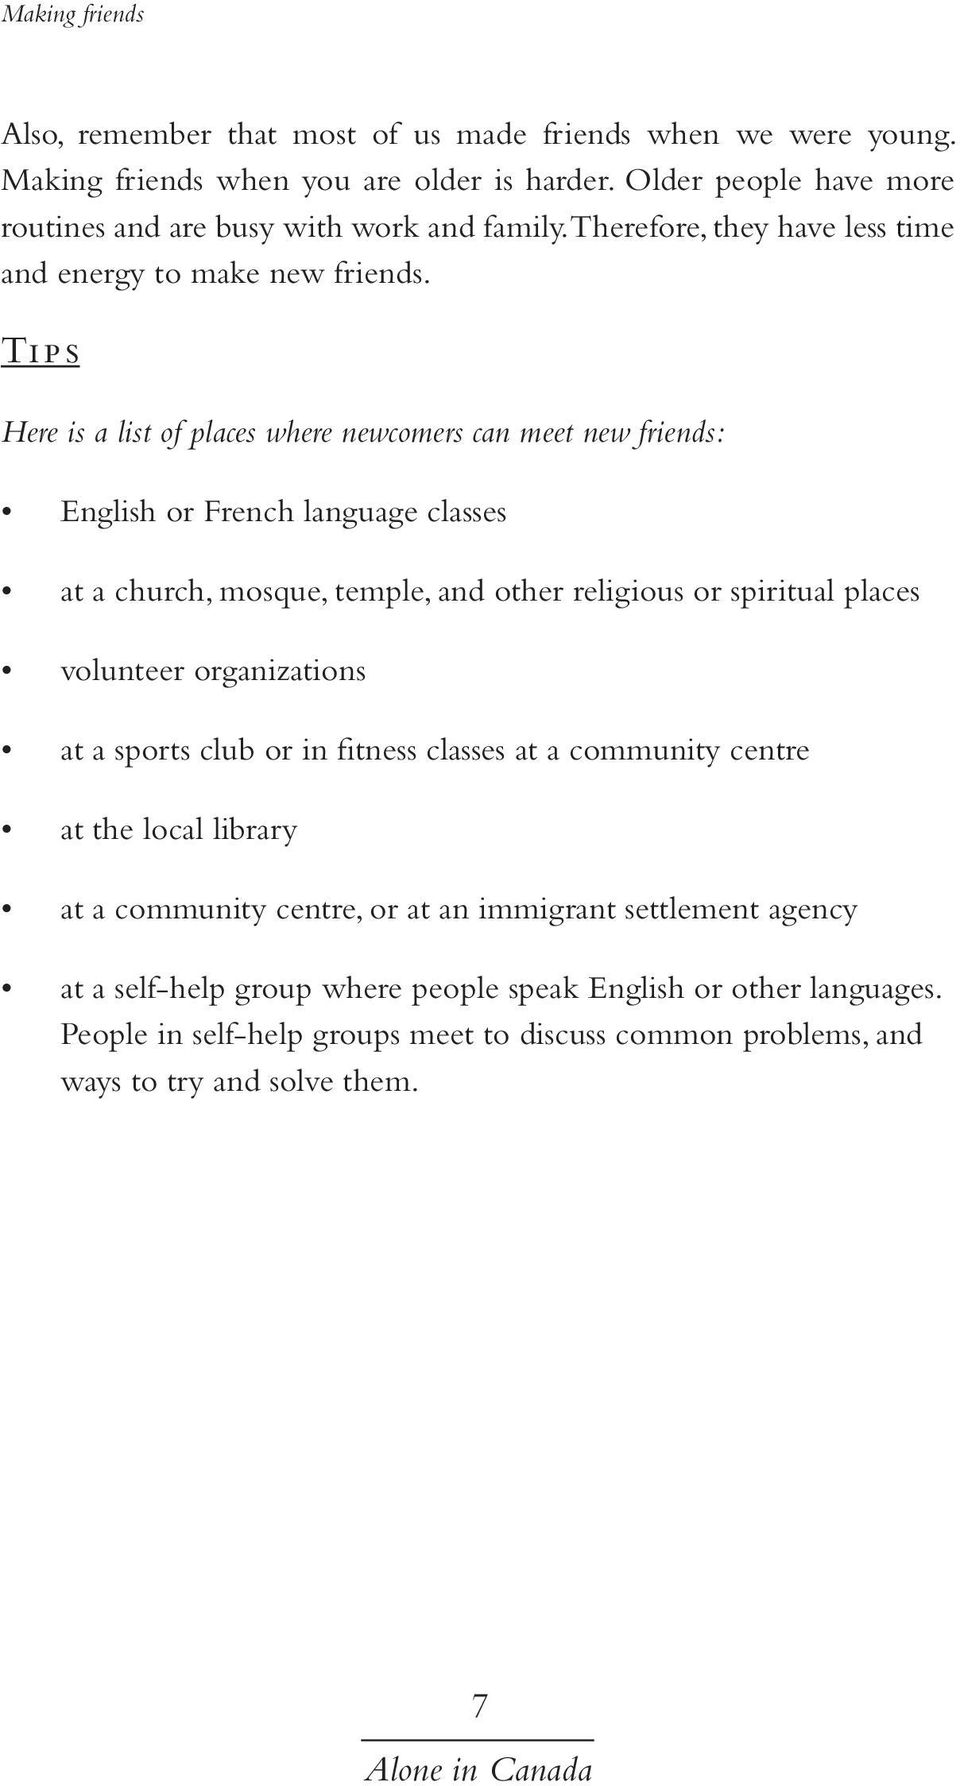 Tips Here is a list of places where newcomers can meet new friends: English or French language classes at a church, mosque, temple, and other religious or spiritual places volunteer